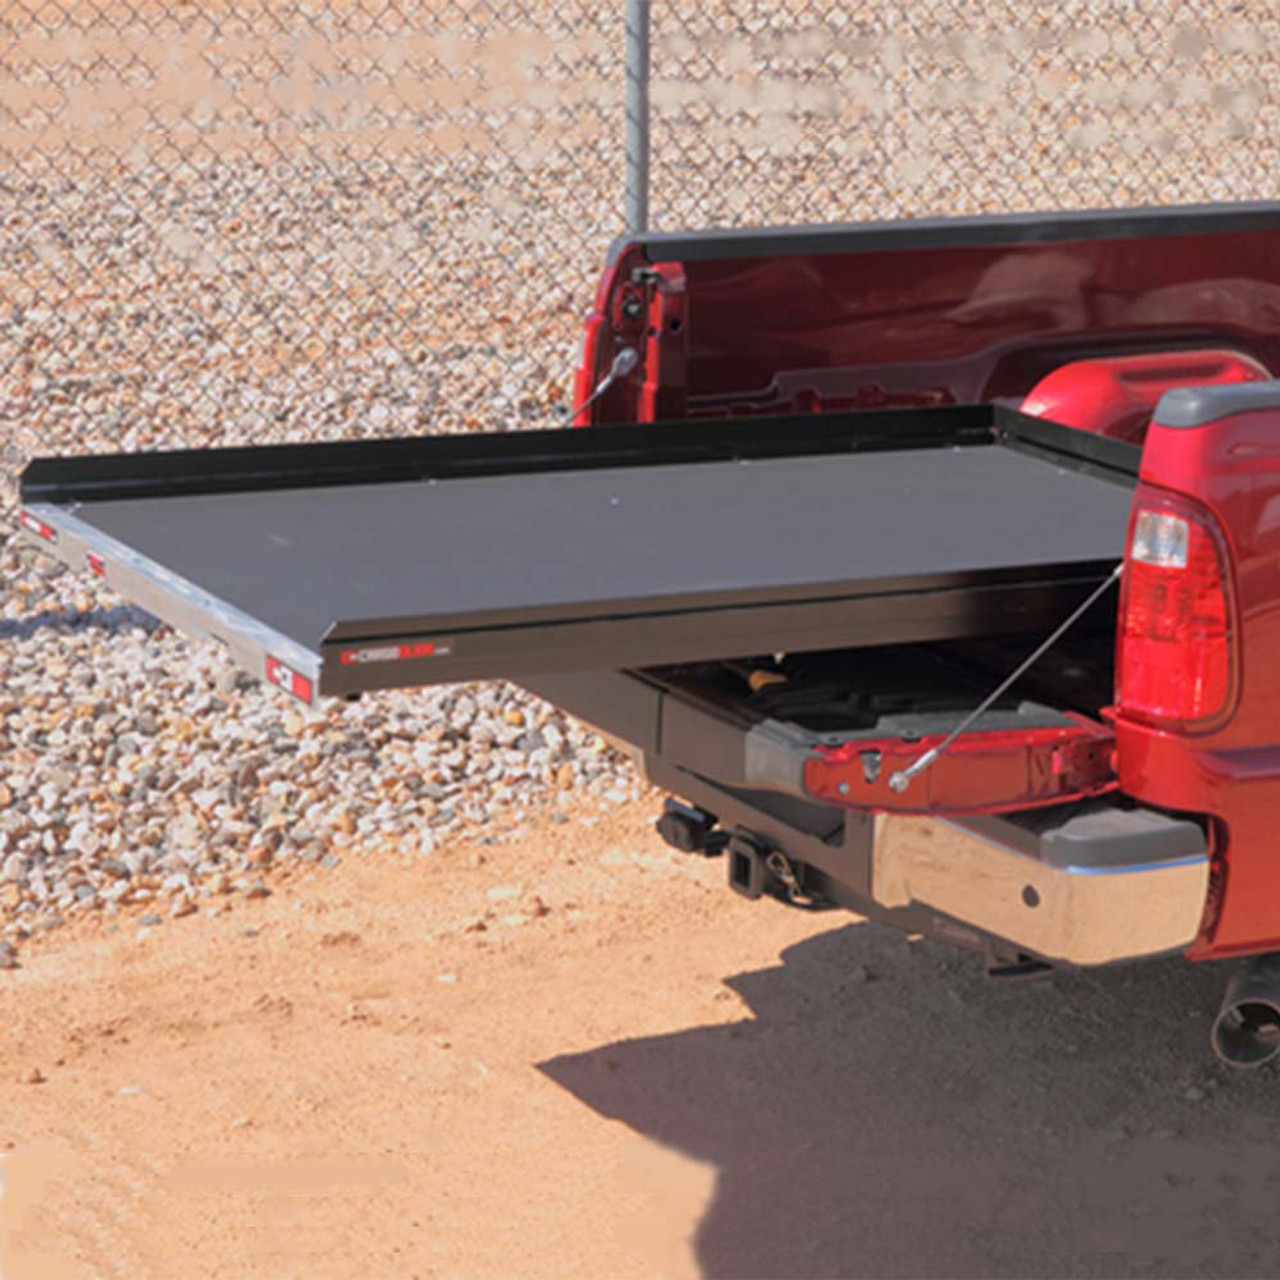 Cargo-Glide CG1000 Ford Raptor, Steel Truck-Bed Slide and Extender, 1000 lb  capacity, 65-75% Extension, 4